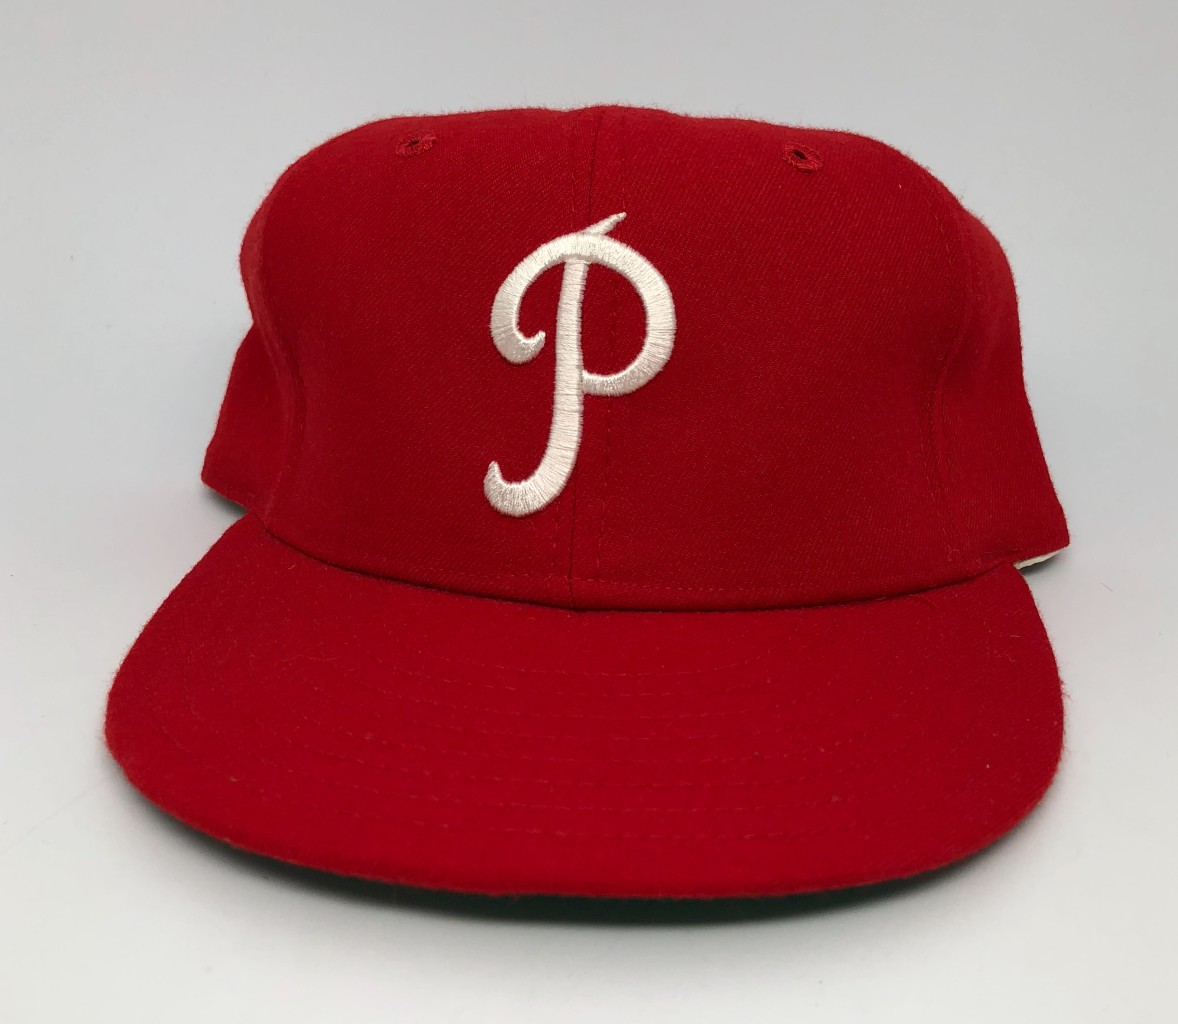 finest selection 59762 29bde 1950-69 Philadelphia Phillies New Era MLB Retro Fitted Hat Size 7 1 8   Rare  Vntg